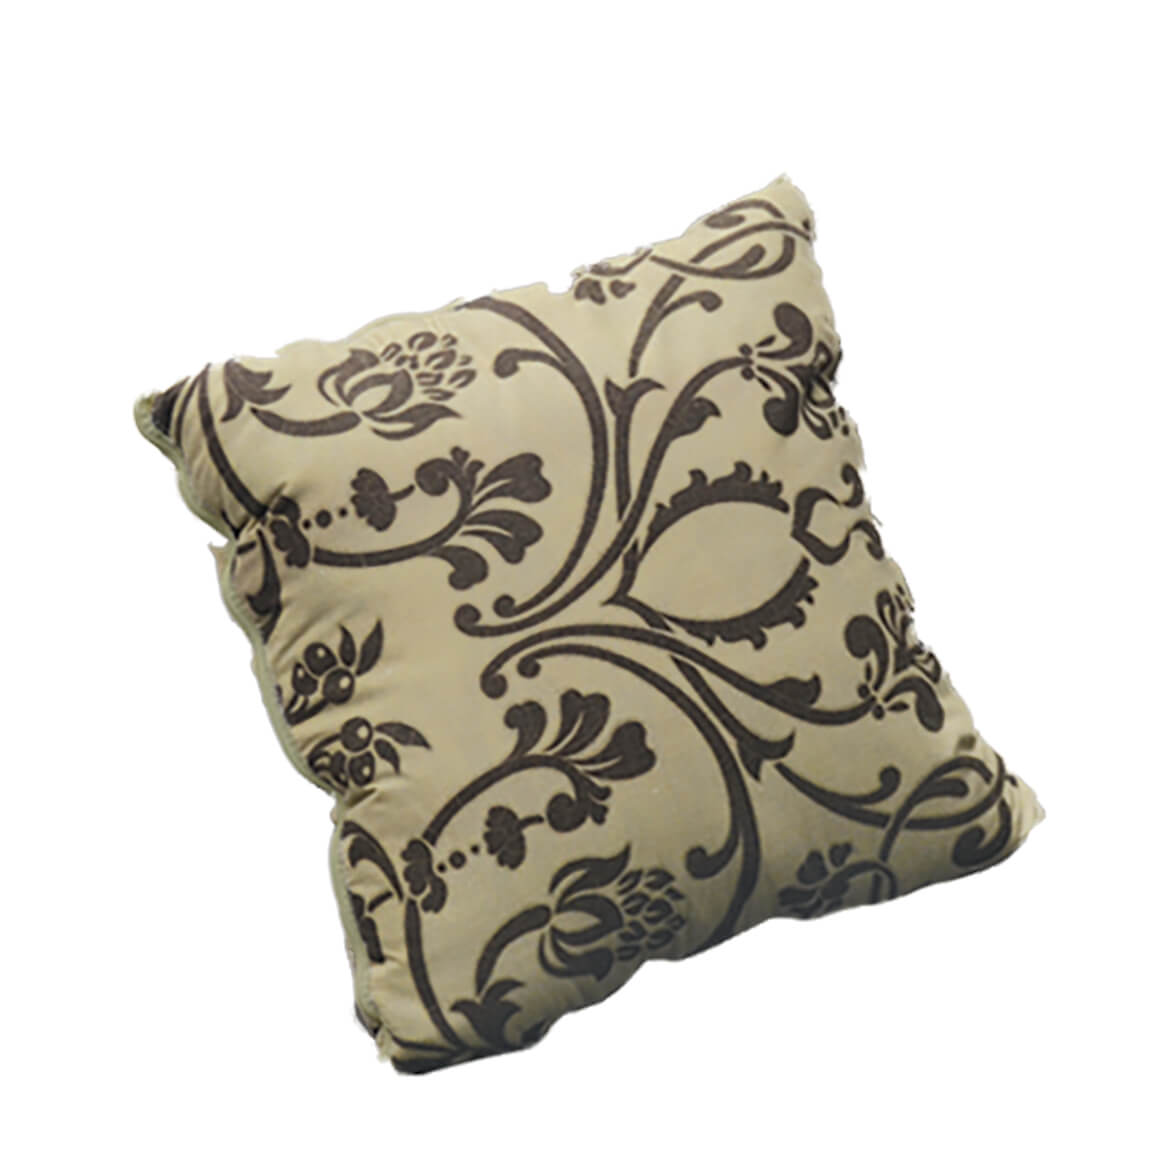 2 in 1 Throw & Pillow-369959